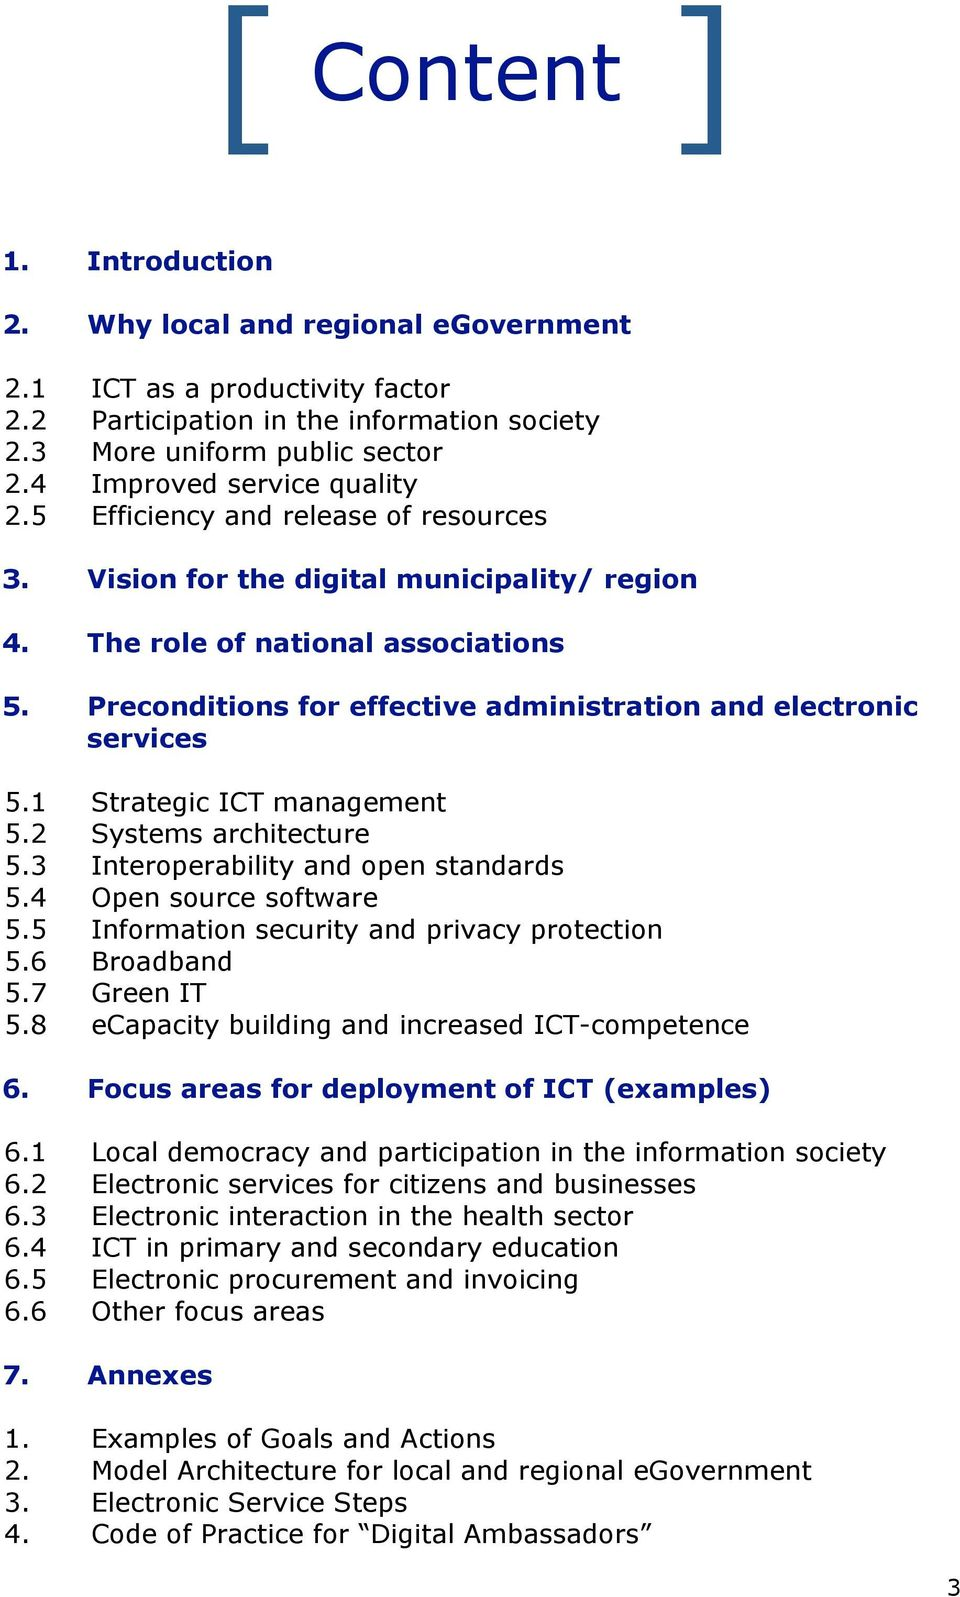 Vision for the digital municipality/ region 4. The role of national associations 5. Preconditions for effective administration and electronic services 5.1 5.2 5.3 5.4 5.5 5.6 5.7 5.